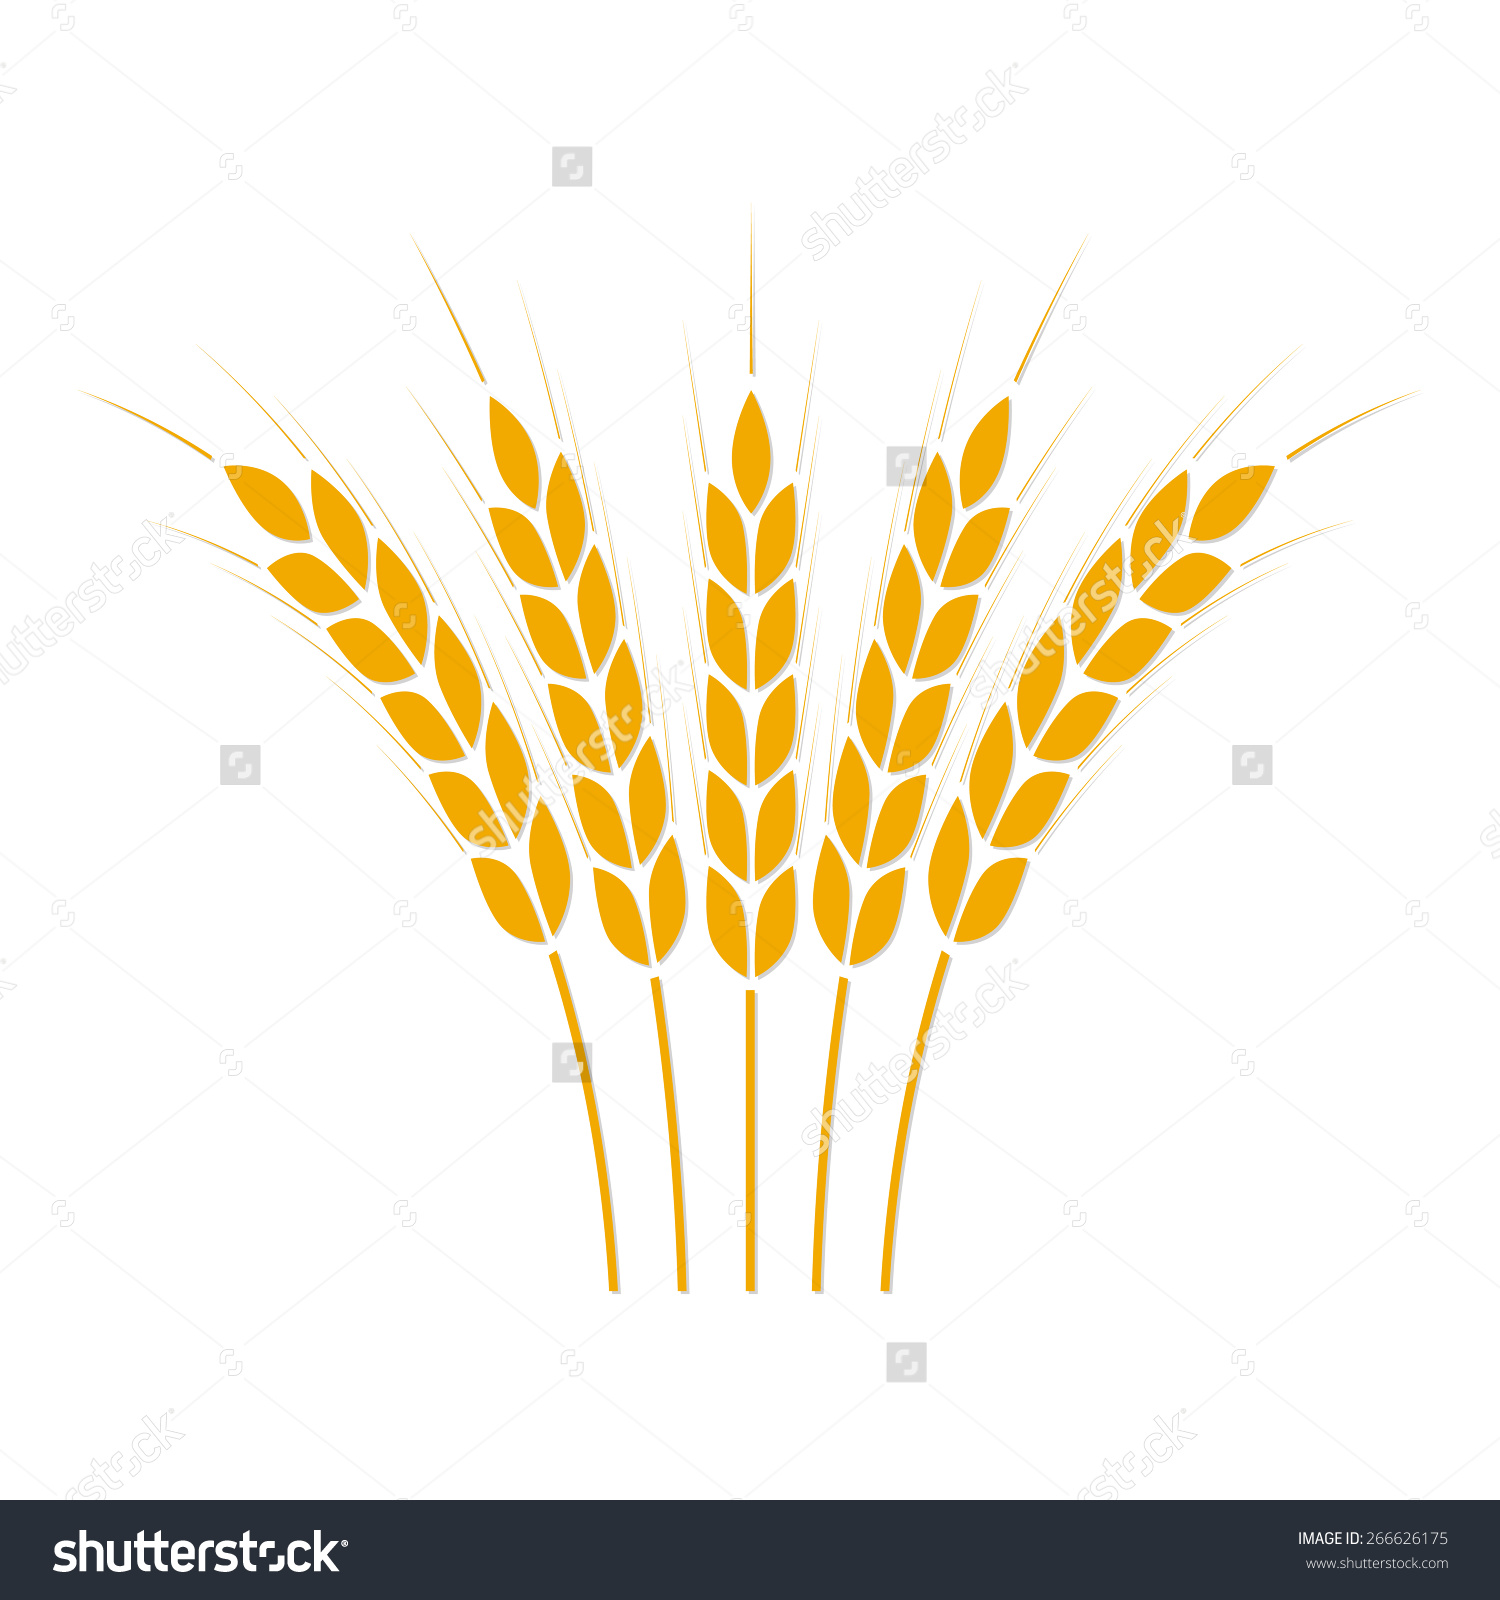 Wheat clipart symbolism. Crop symbol isolated on